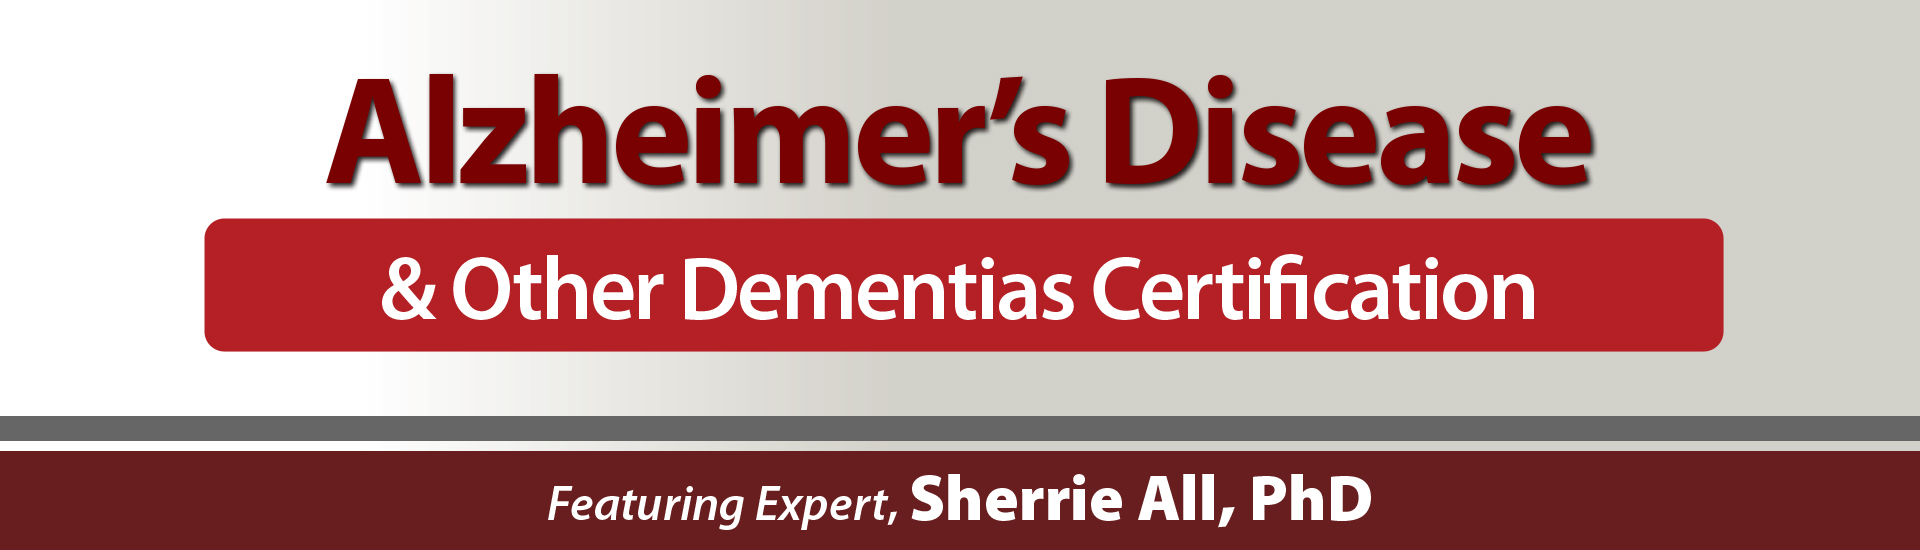 Alzheimer's Disease and Other Dementia Certification Full Header